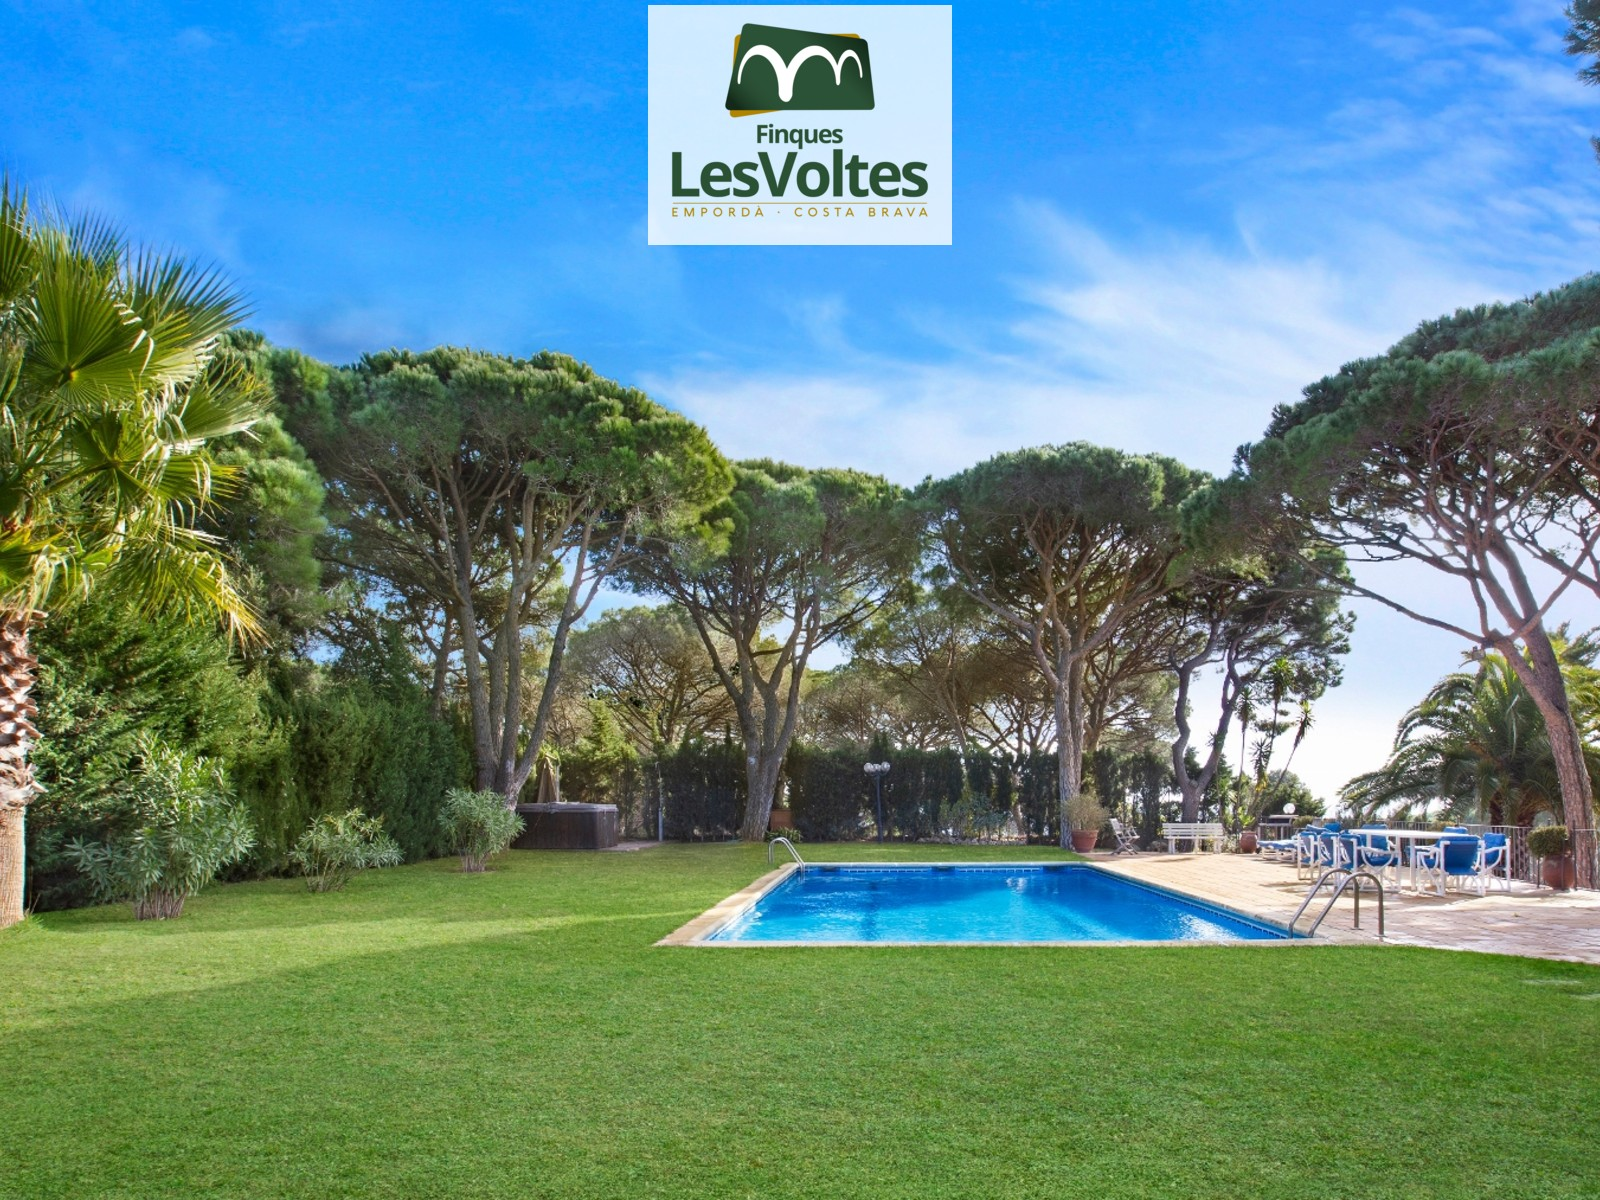 MEDITERRANEAN STYLE HOUSE 248m2 HIGH STANDARD WITH LARGE 7200 m2 LAND FOR SALE IN CALELLA DE PALAFRUGELL